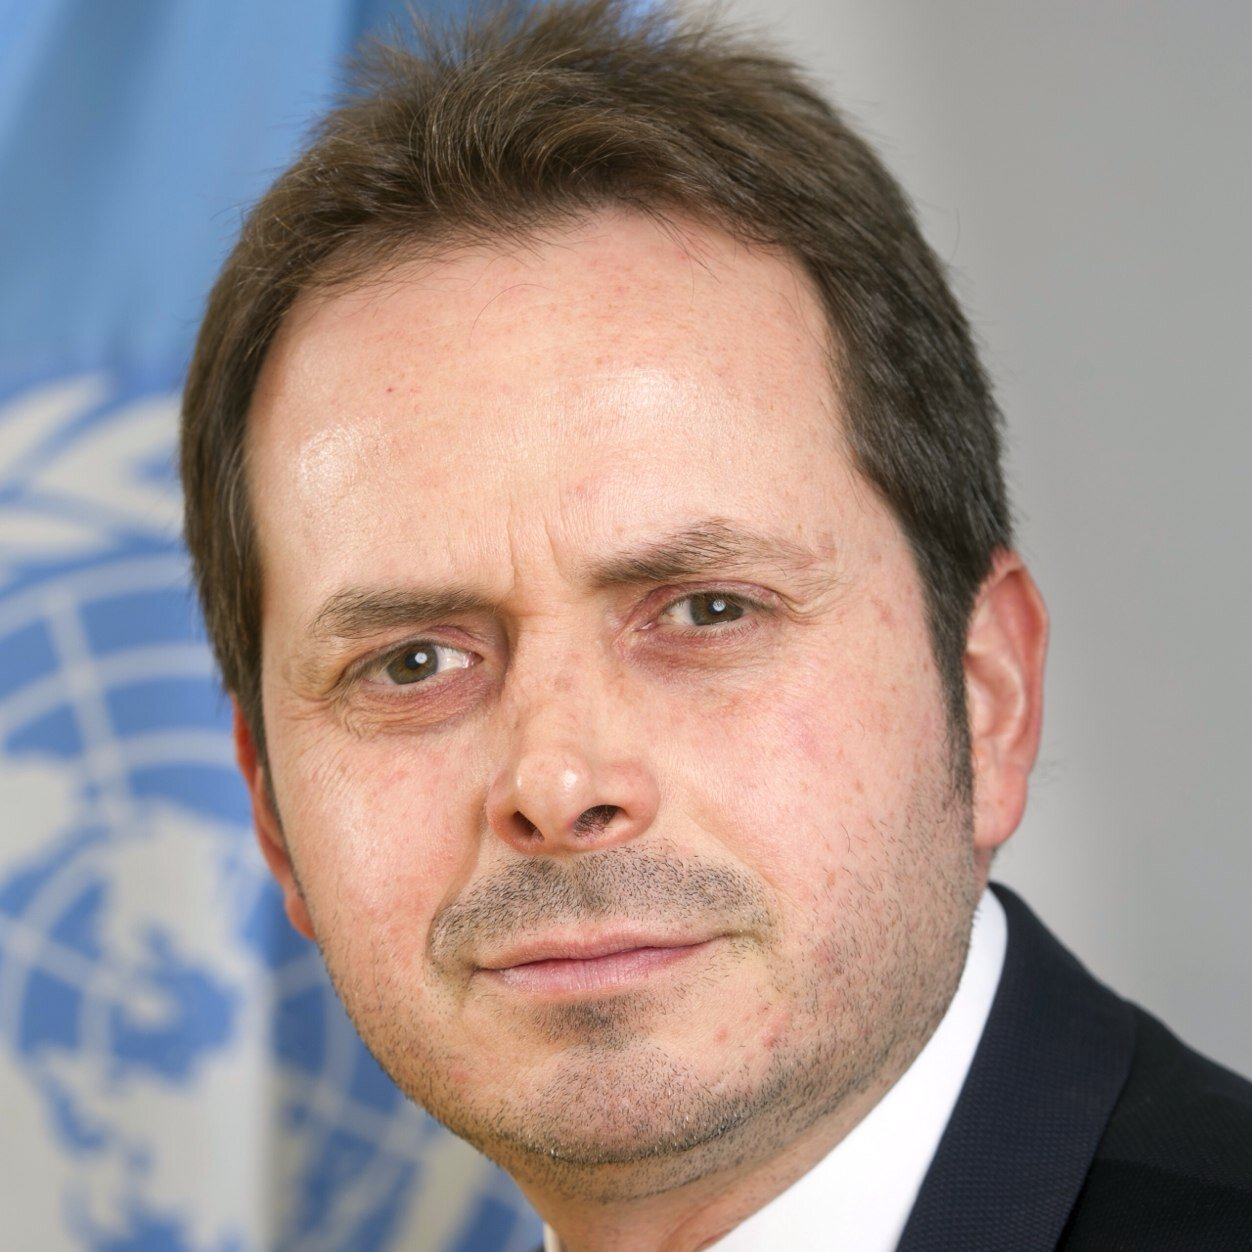 Carlos Ruiz Massieu Special Representative of the Secretary-General for Colombia and Head of the United Nations Verification Mission in Colombia